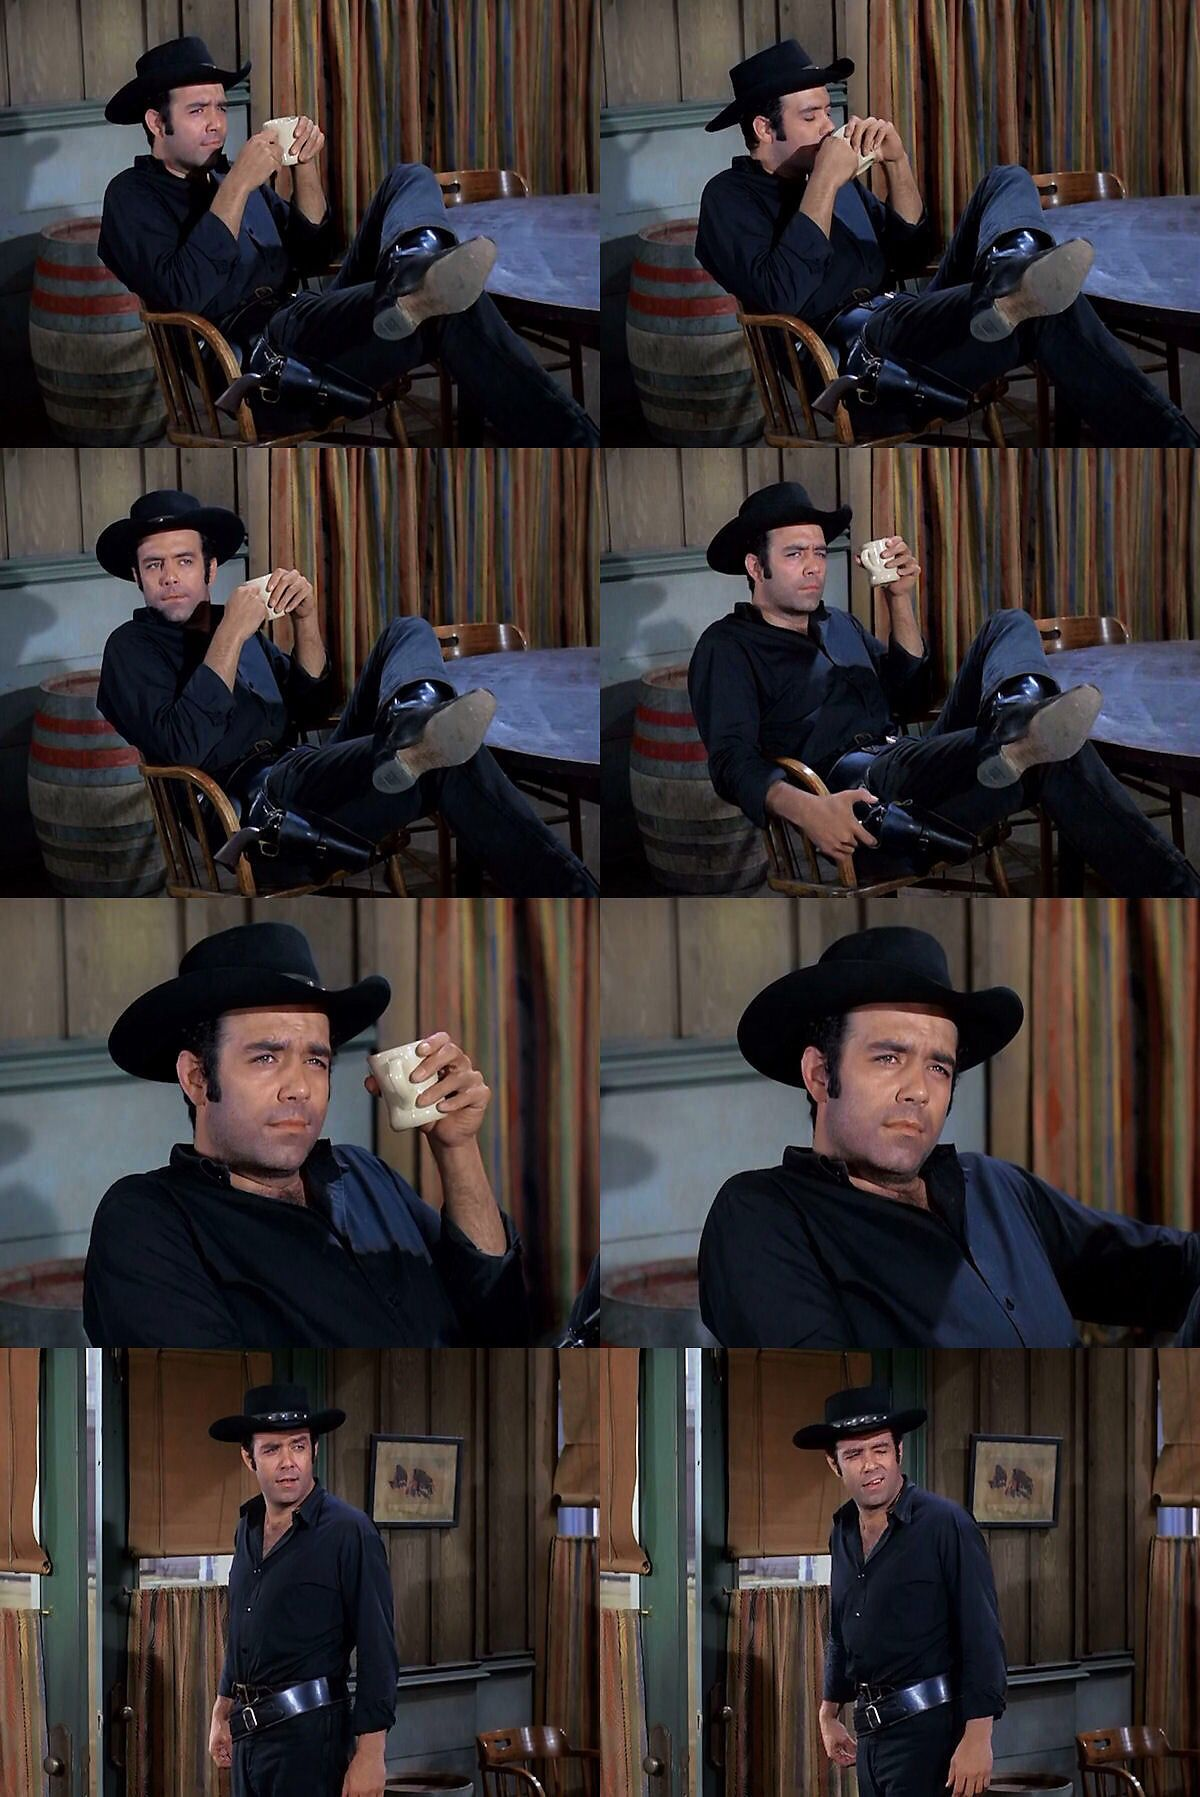 Adam Cartwright, who keeps his cool in every situation. From The Toy Soldier (Bonanza)